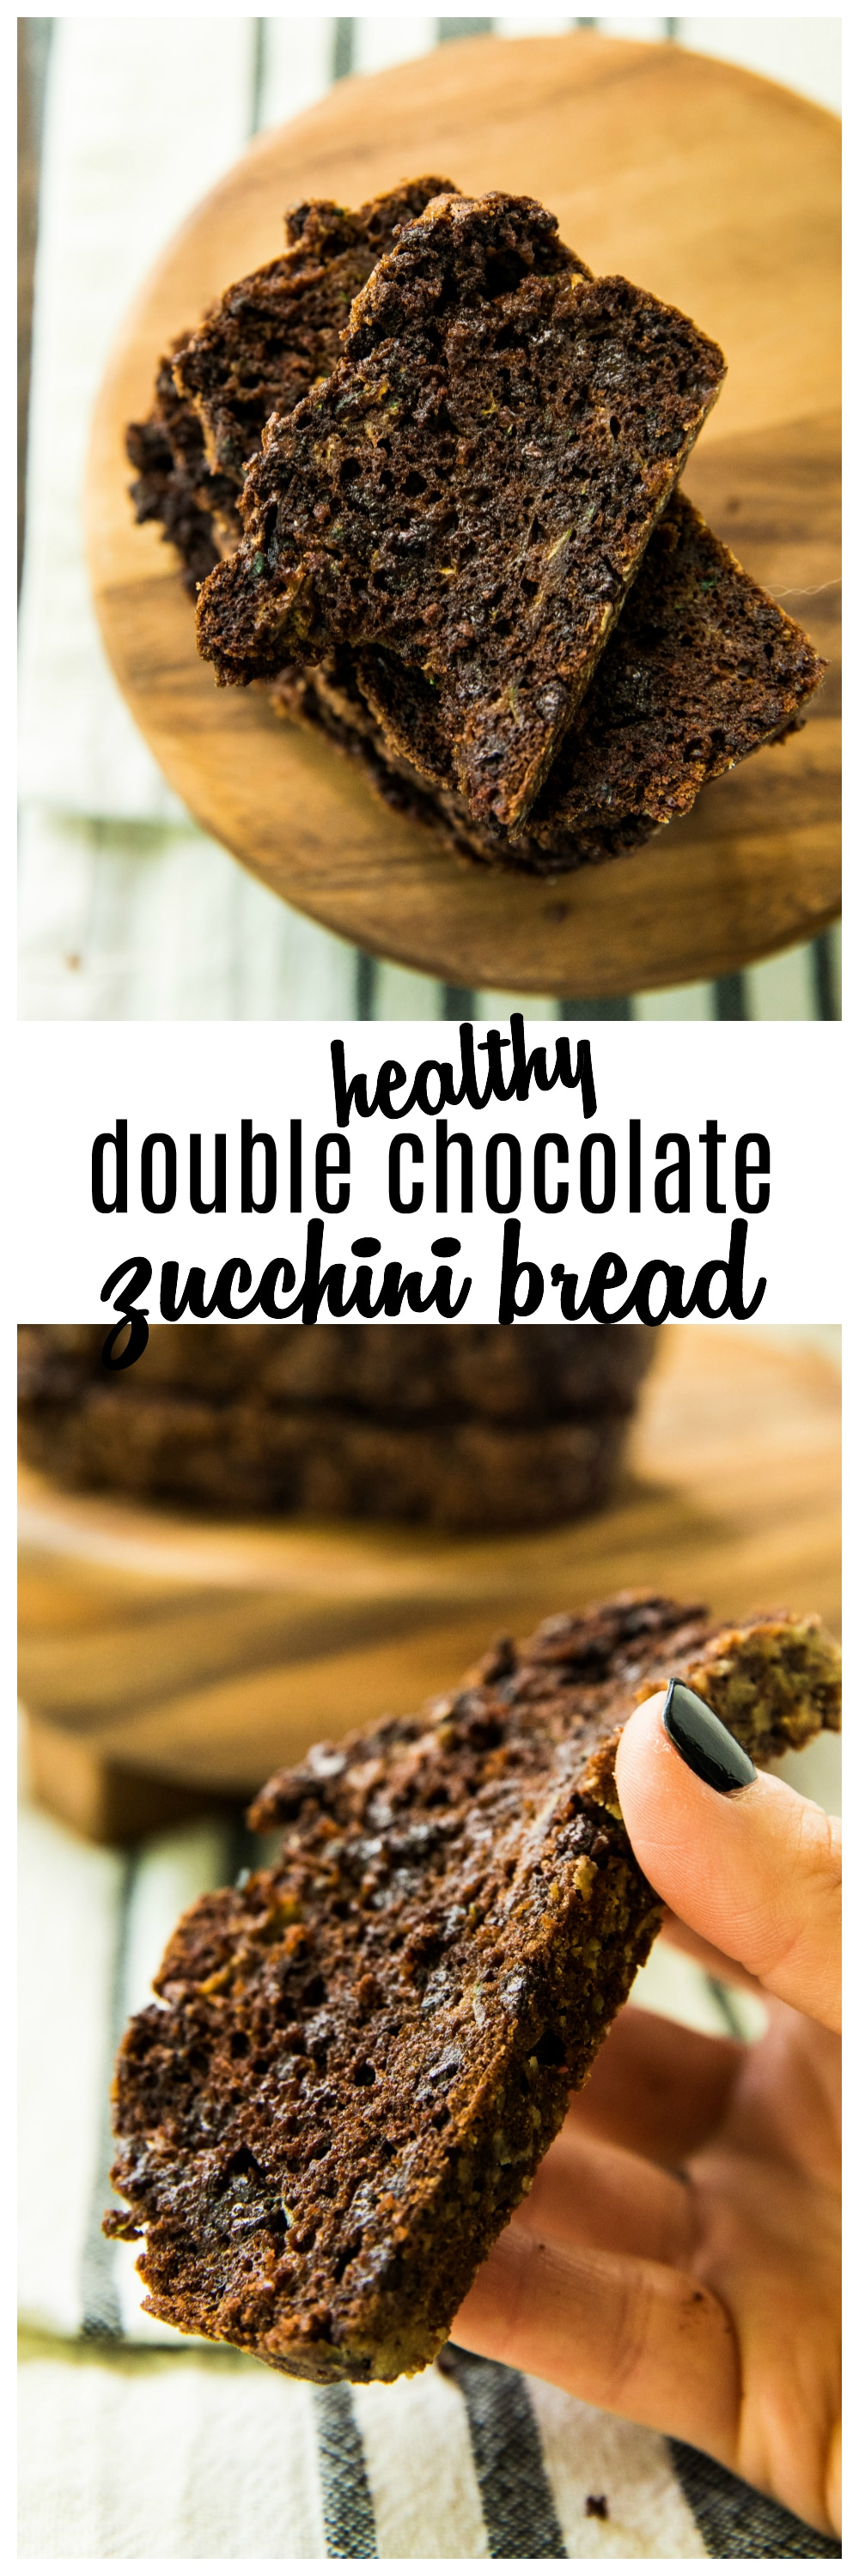 Zucchini bread queens, do I have a recipe for you! This Healthy Double Chocolate Zucchini Bread with a cinnamon sugar crust is perfectly sweetened, richly flavored, moist, and simple to make.